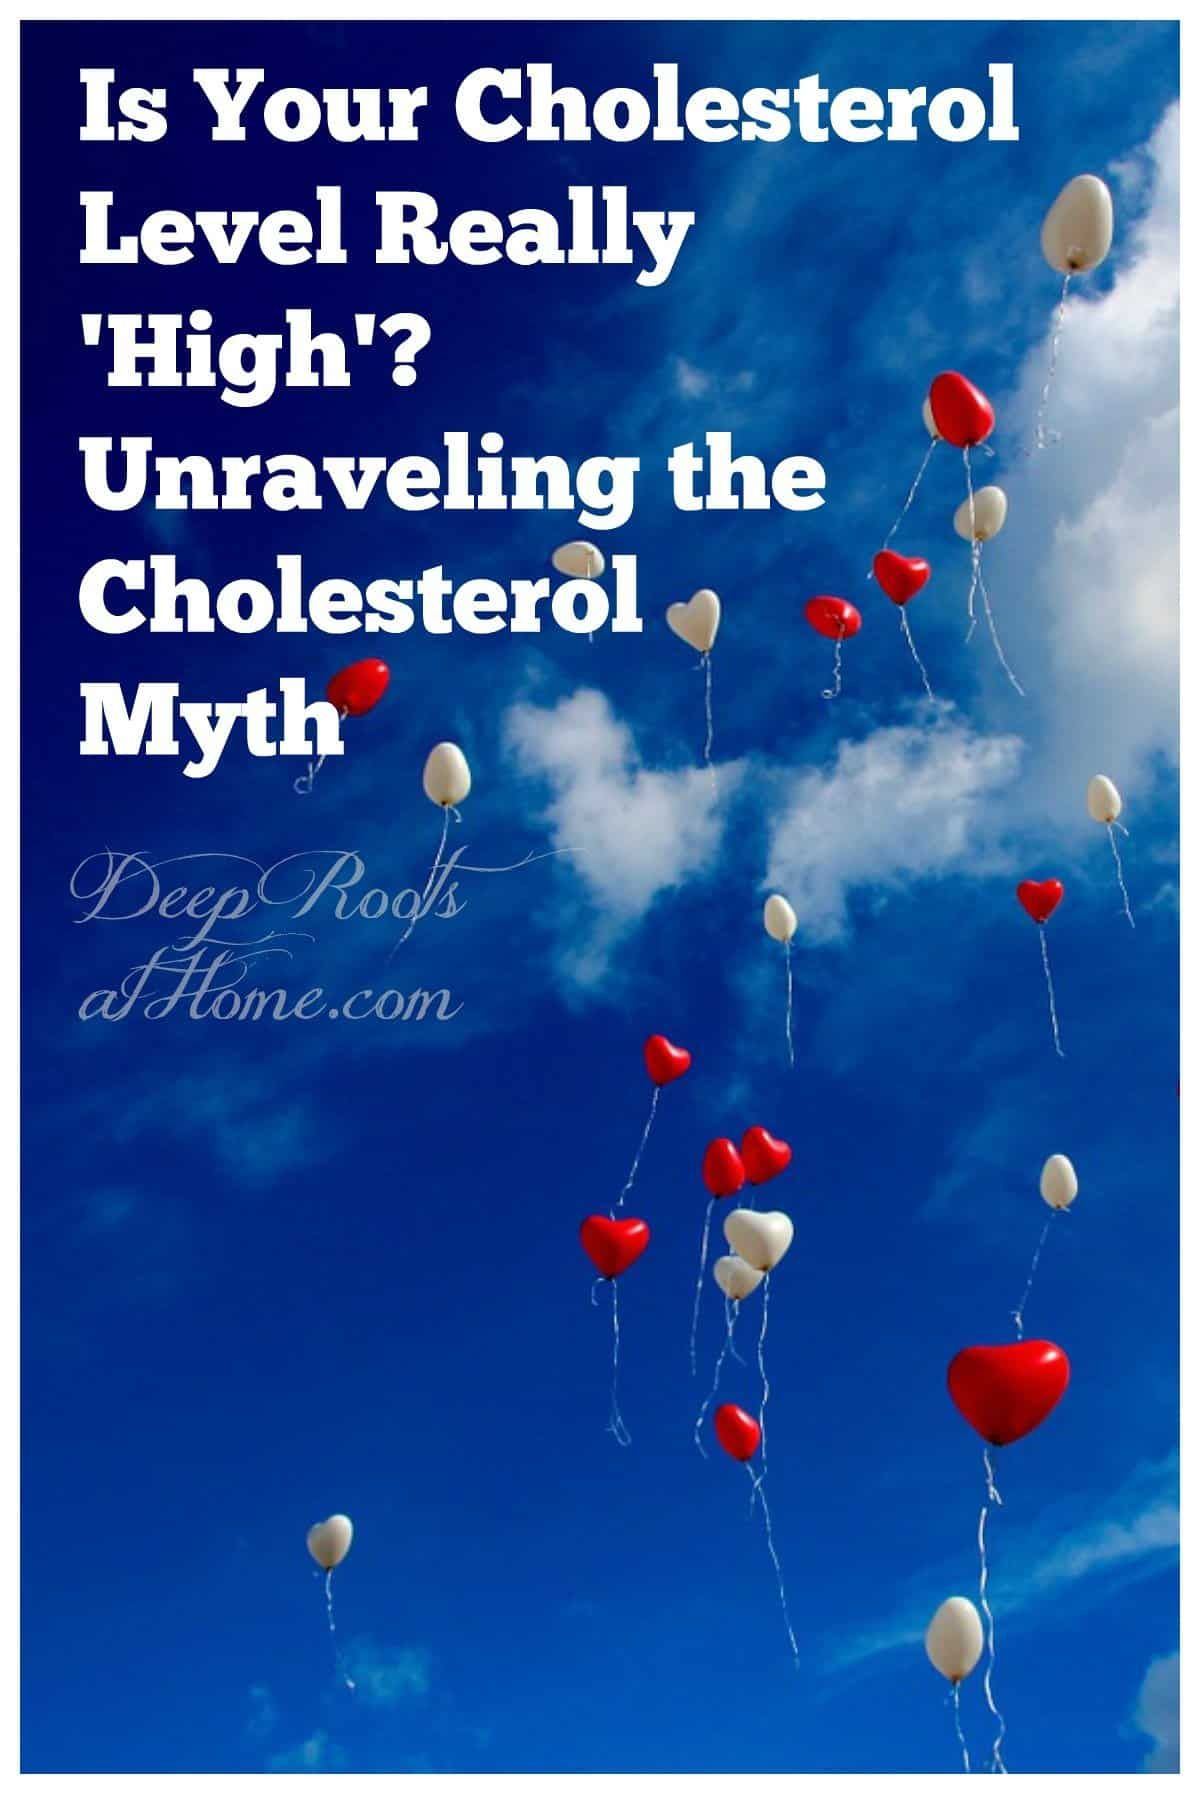 Is Your Cholesterol Level Really 'High'? Dissembling the Cholesterol Myth. #healthy #lifestyle #life...